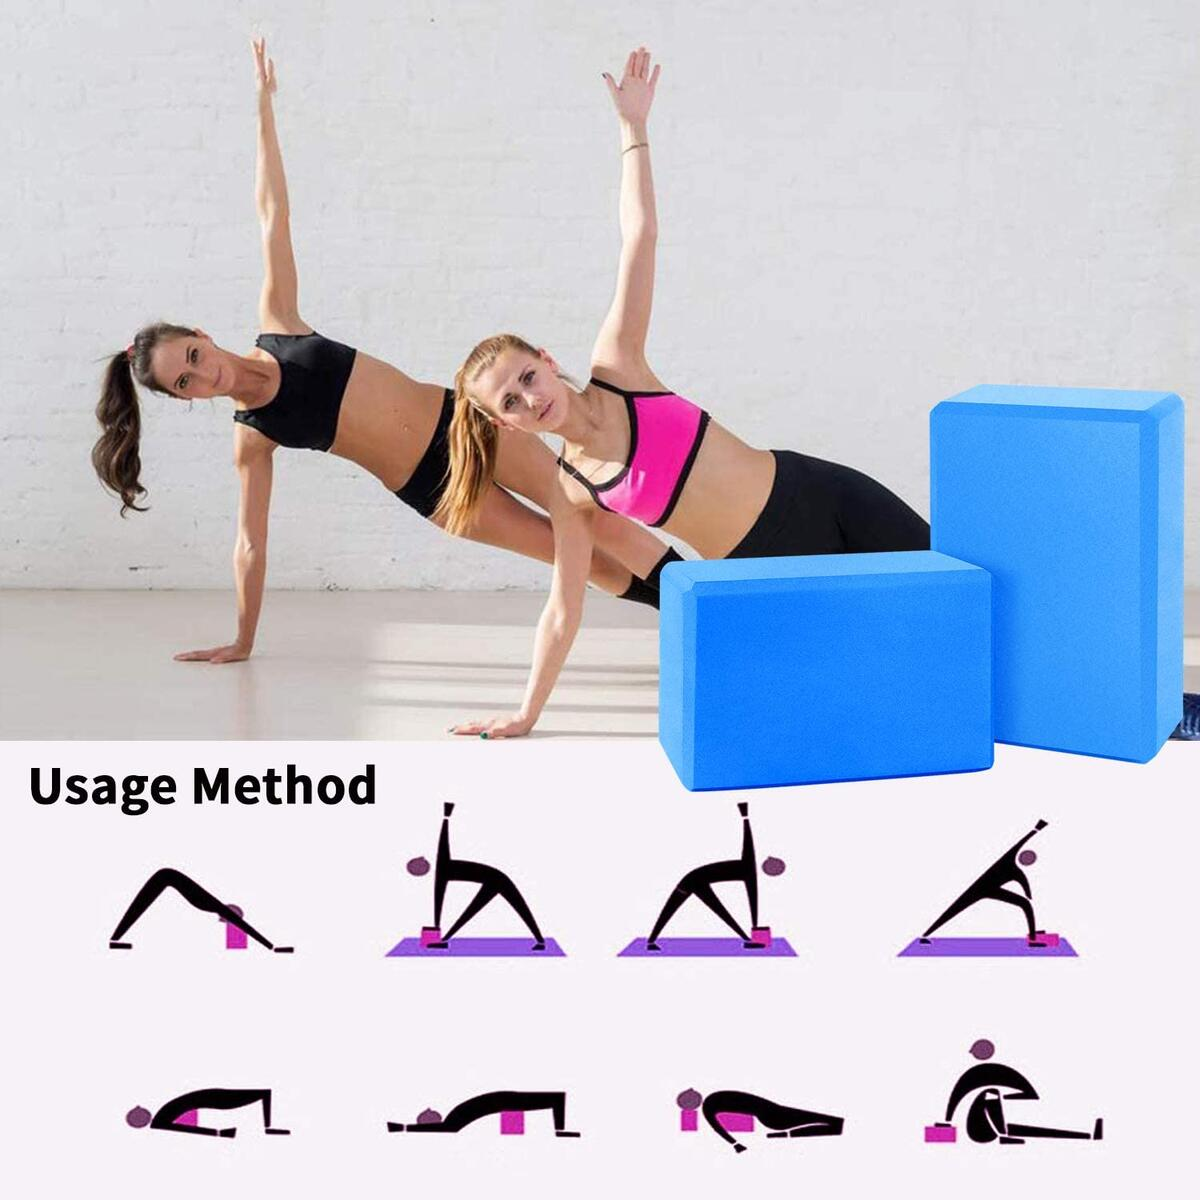 Sunrich Yoya Blocks 2 Pack wth Resistance Bands Set High Density EVA Foam Brick Soft Non-Slip Surface Provide Stability Blacnce Strength for Women Yoya Pilates Exercise to Support Deepen Postures